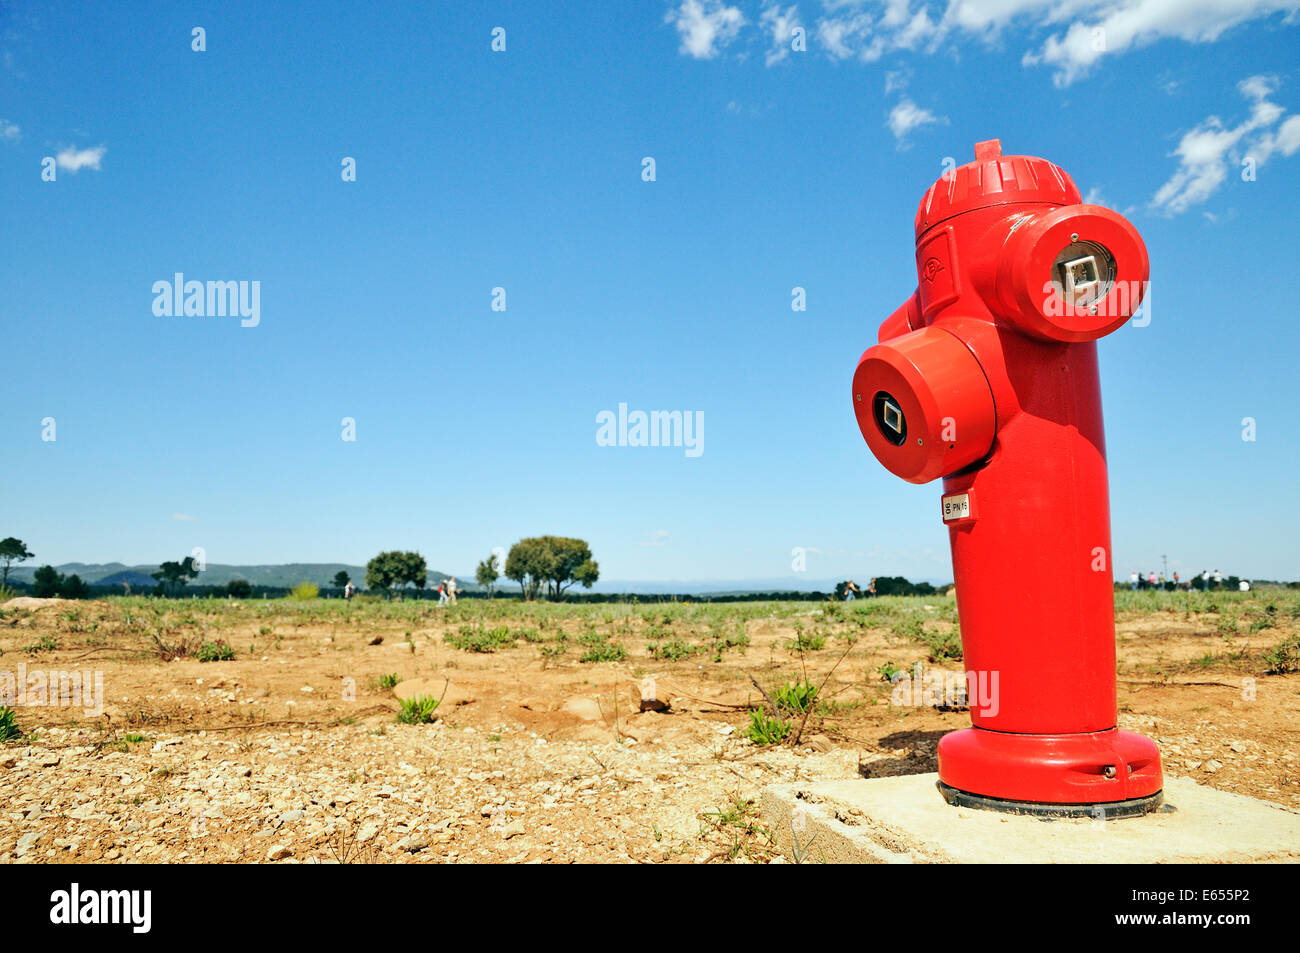 Red fire hydrant in remote countryside, Var, France, Europe - Stock Image